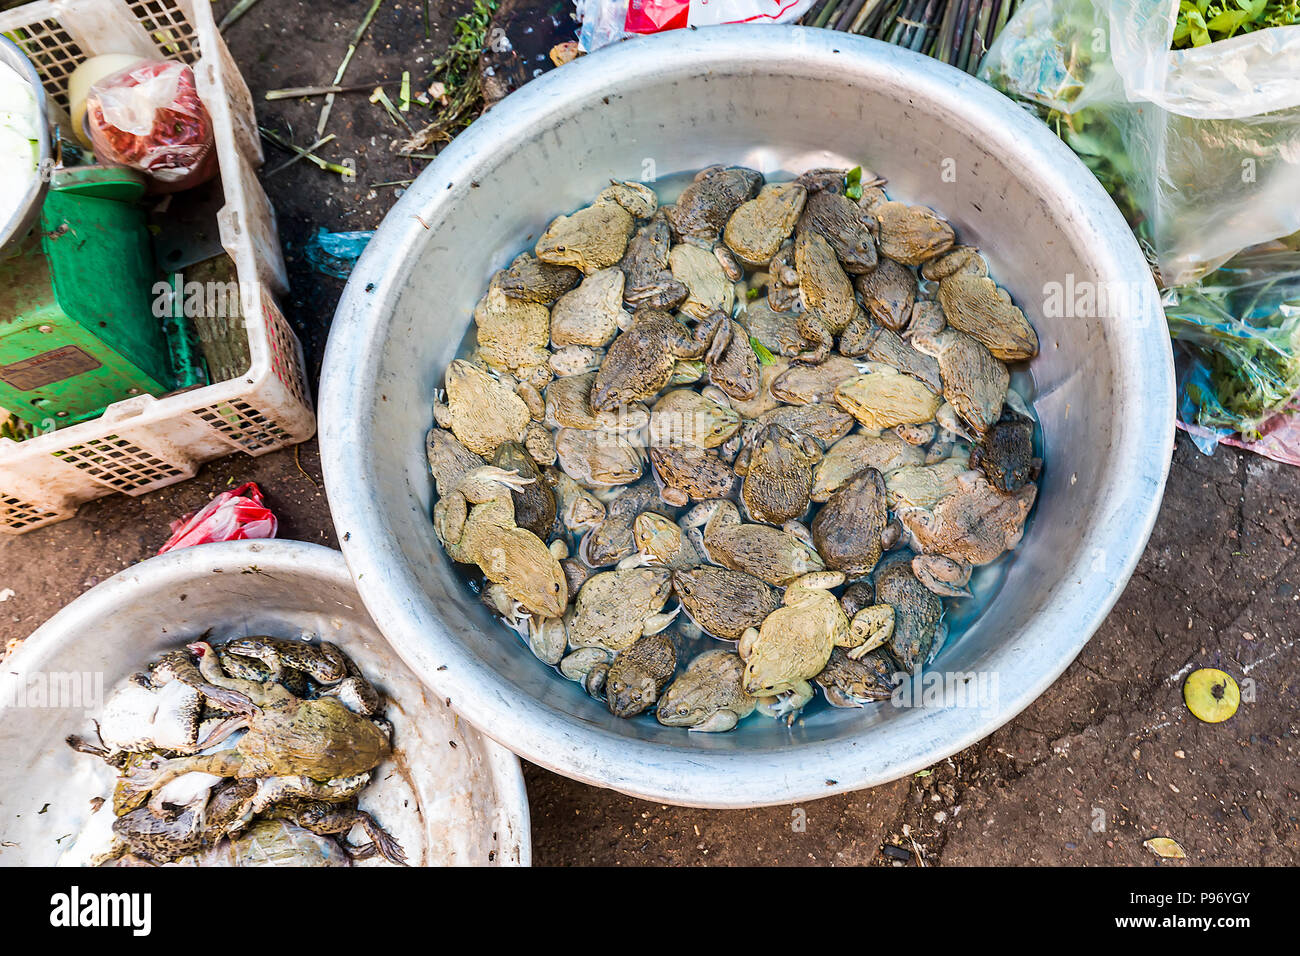 Frogs and toads on sale for food in market, Pakse, Laos - Stock Image